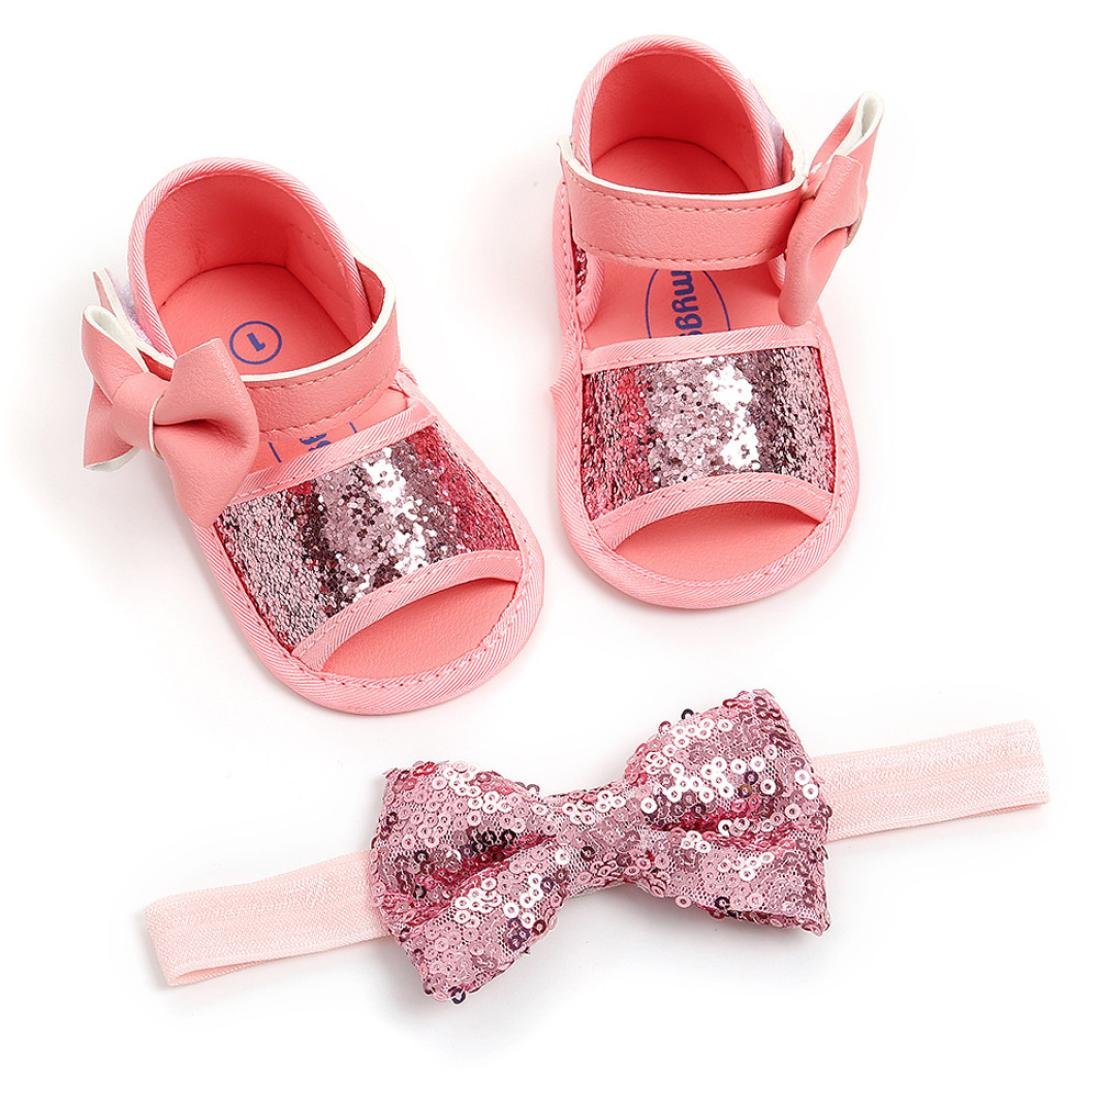 Lanhui Girl Sequins Bowknot Fashion Toddler First Walkers Kid Shoes+Hairband